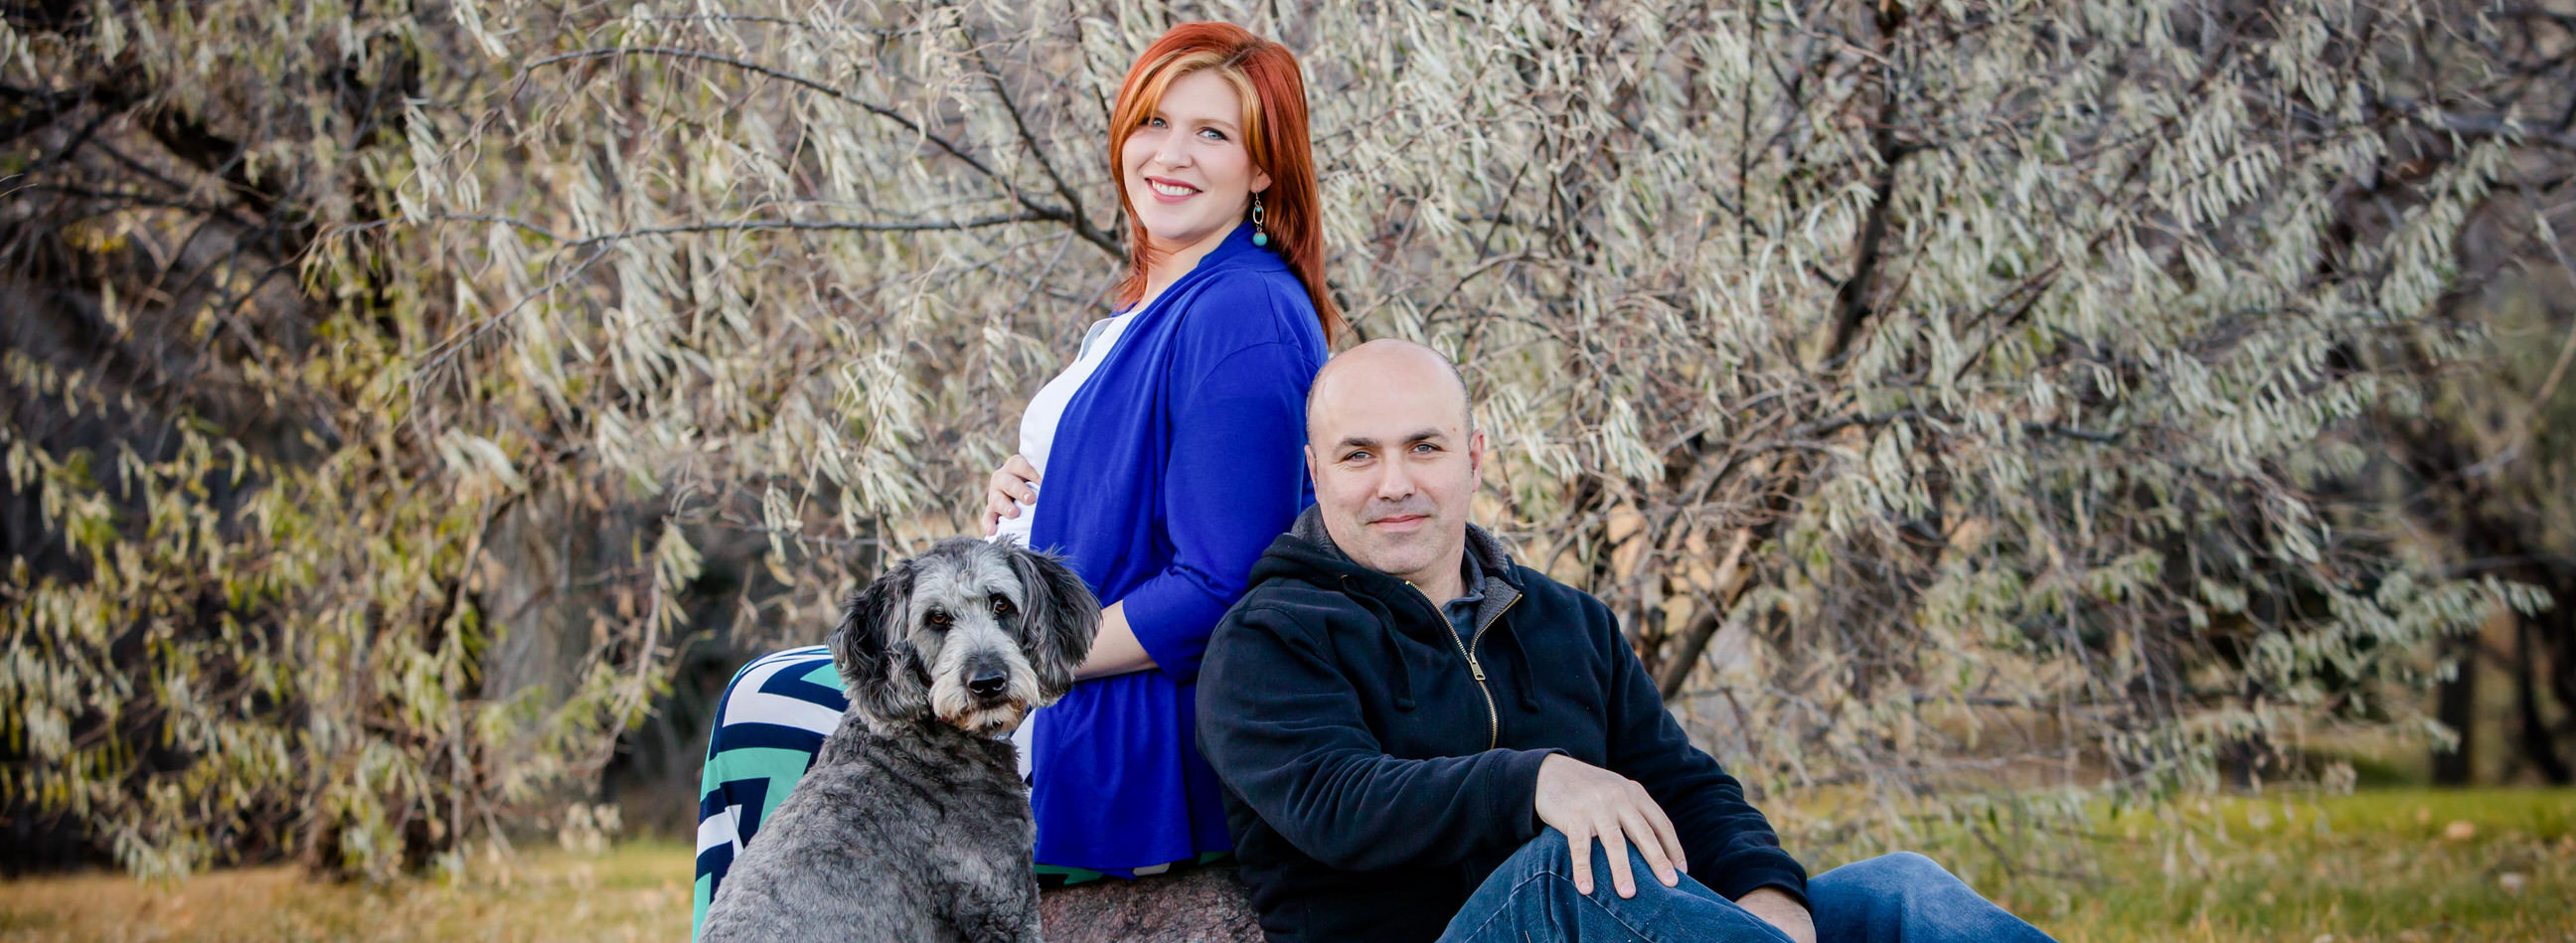 Kallie testimonial, early winter maternity photos with husband and pet dog